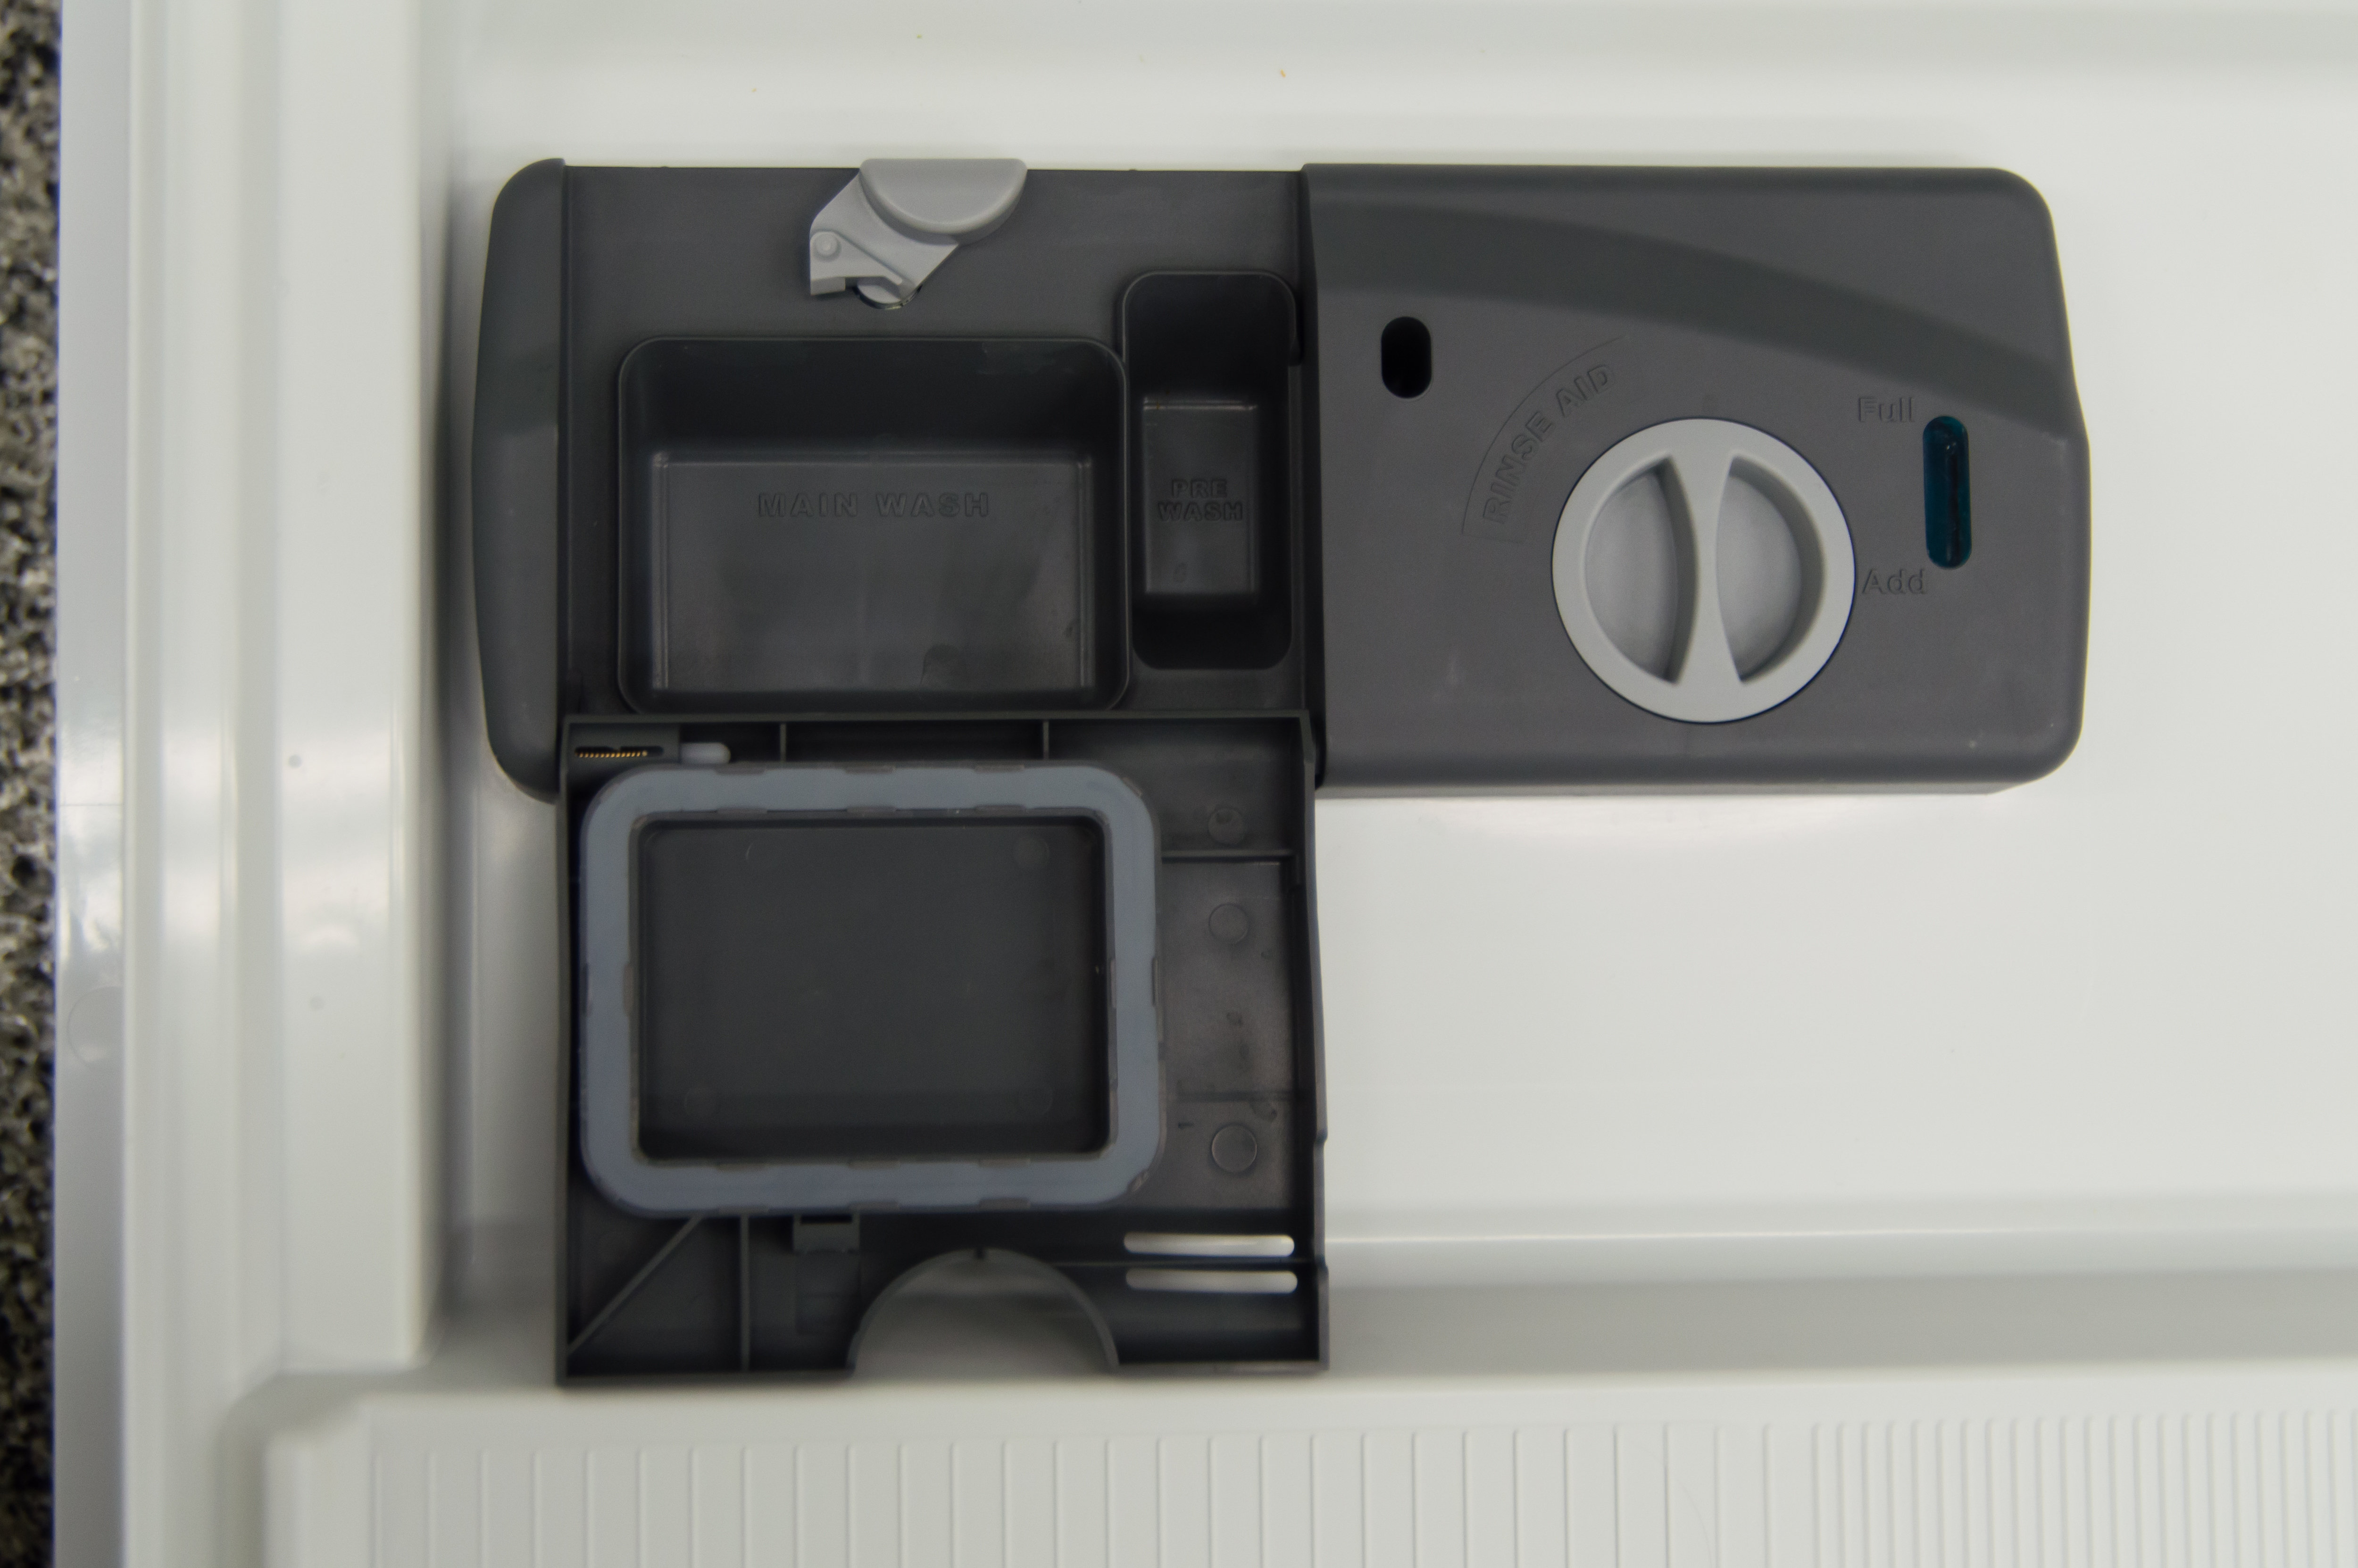 The detergent dispenser, with a separate pre-wash compartment, isn't marked for powder detergent.